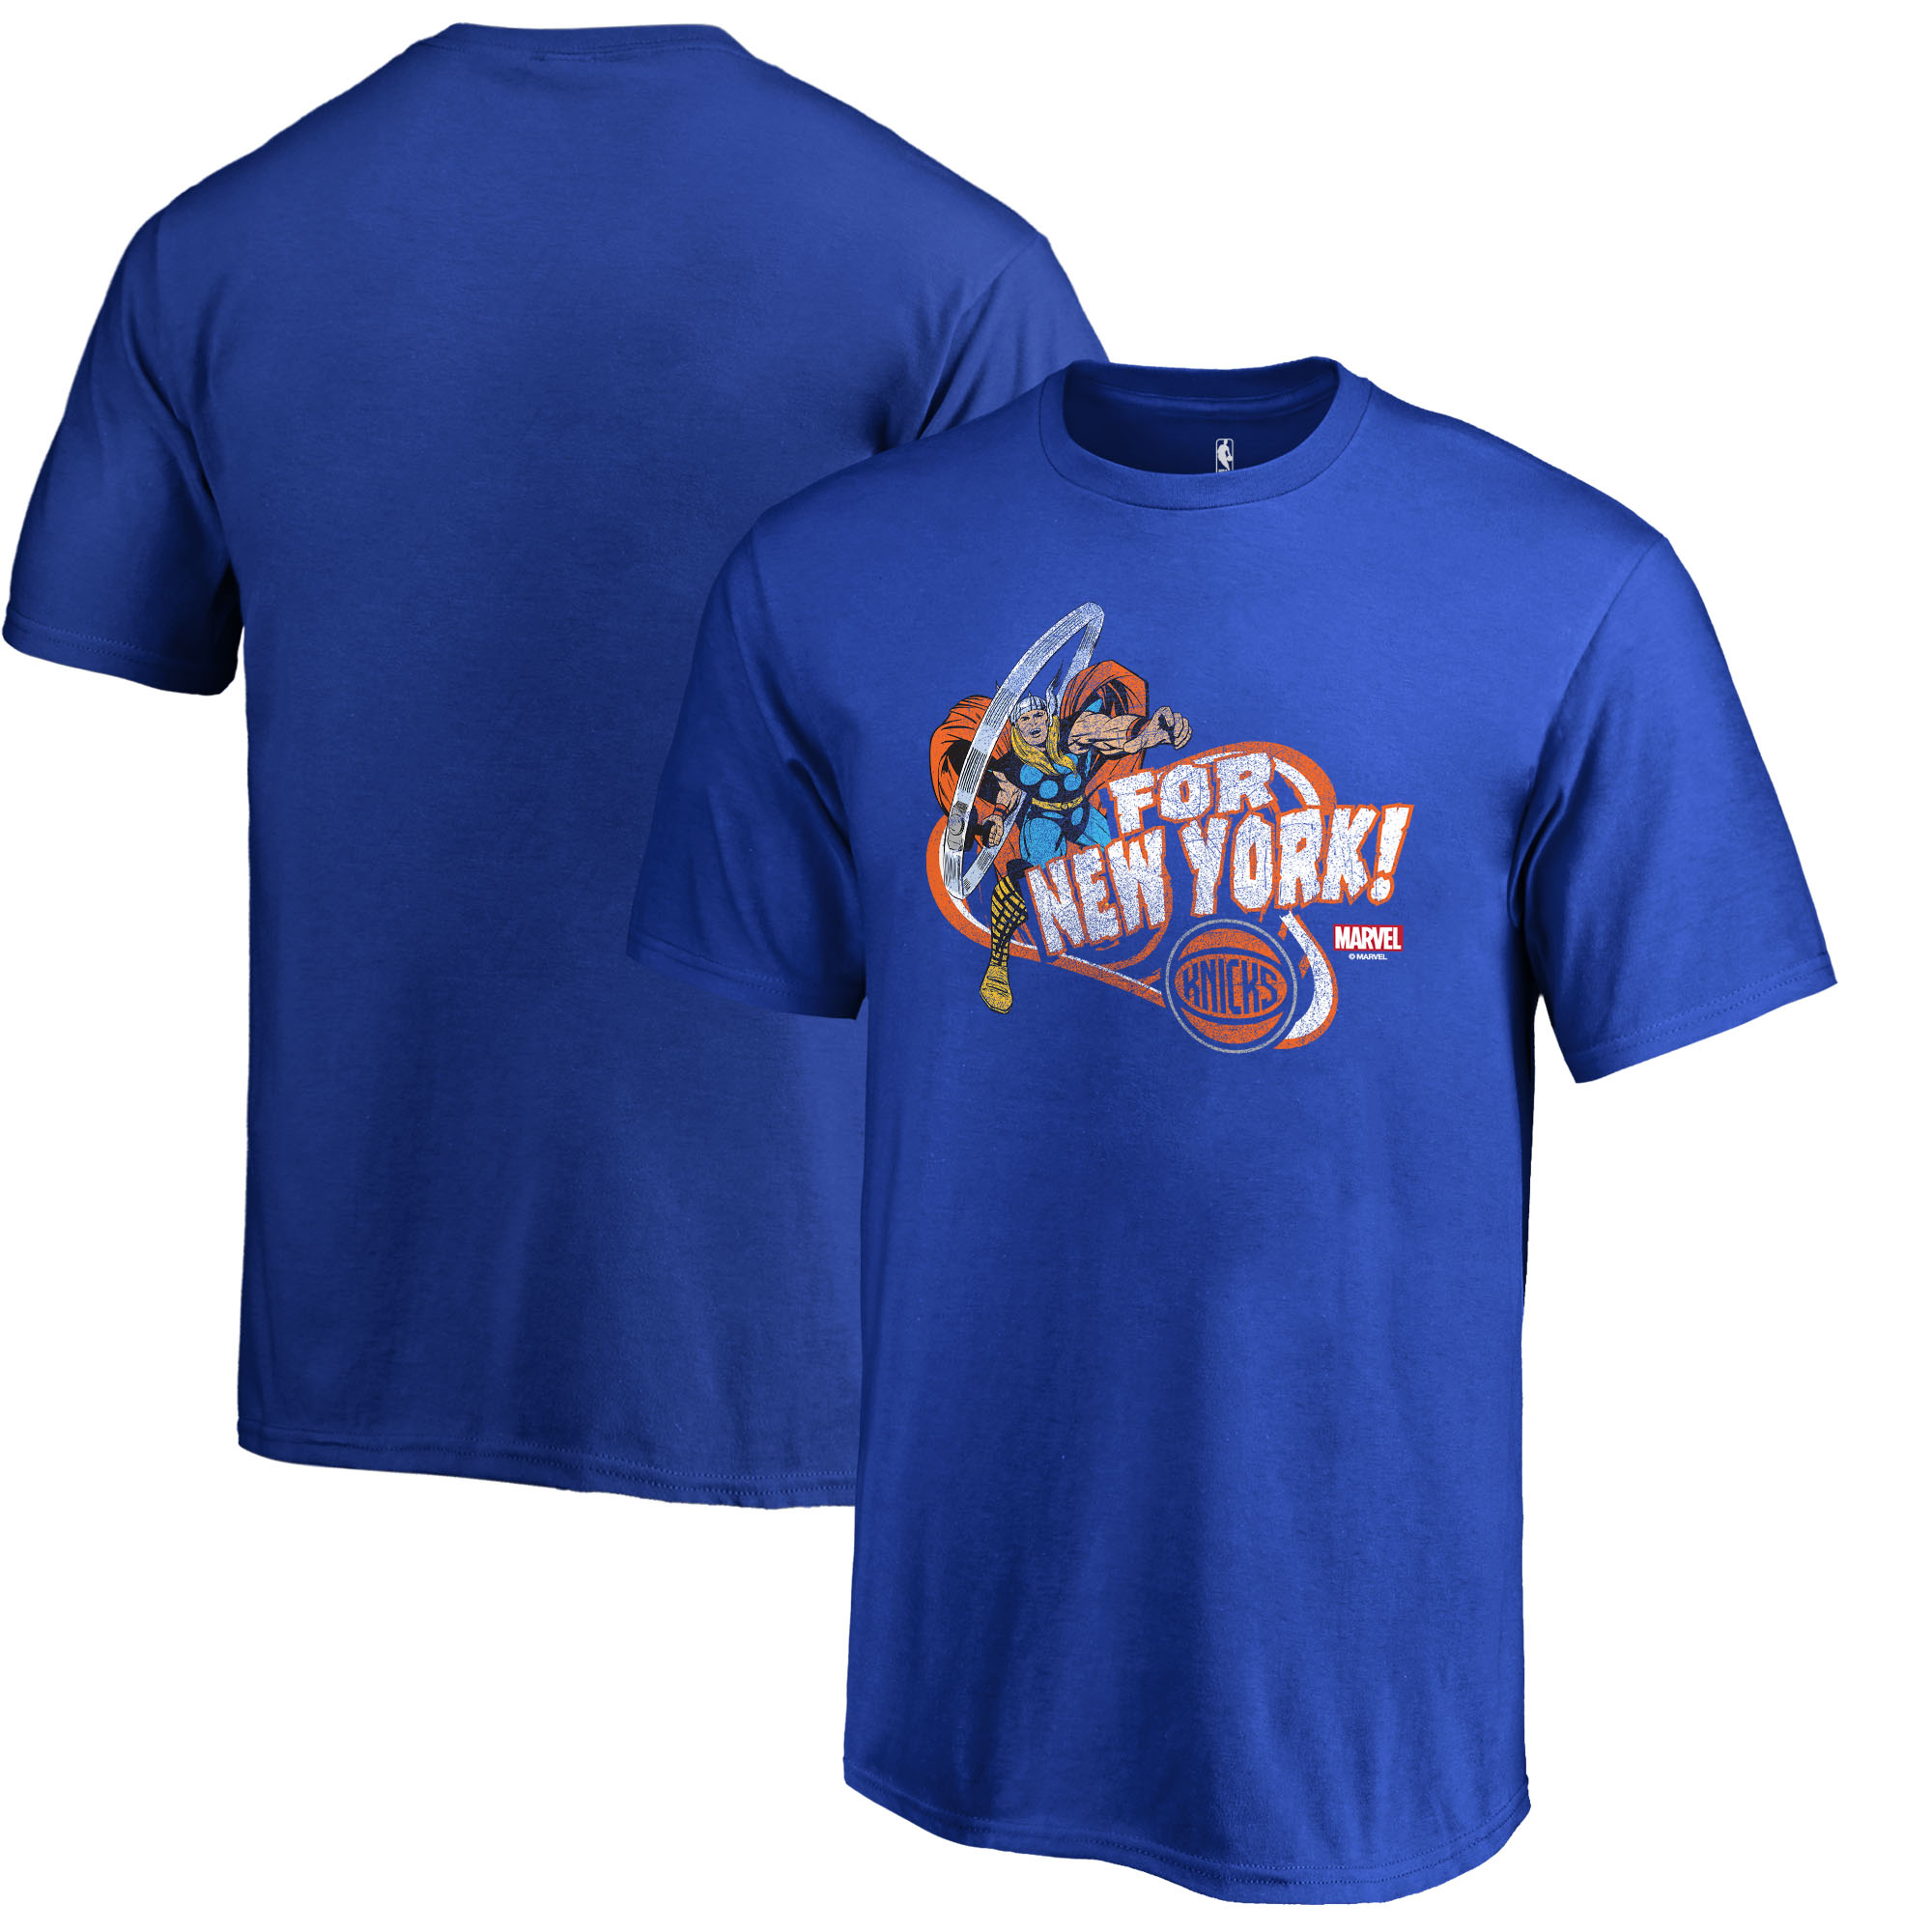 New York Knicks Fanatics Branded Youth Marvel Thor for Asgard T-Shirt - Blue